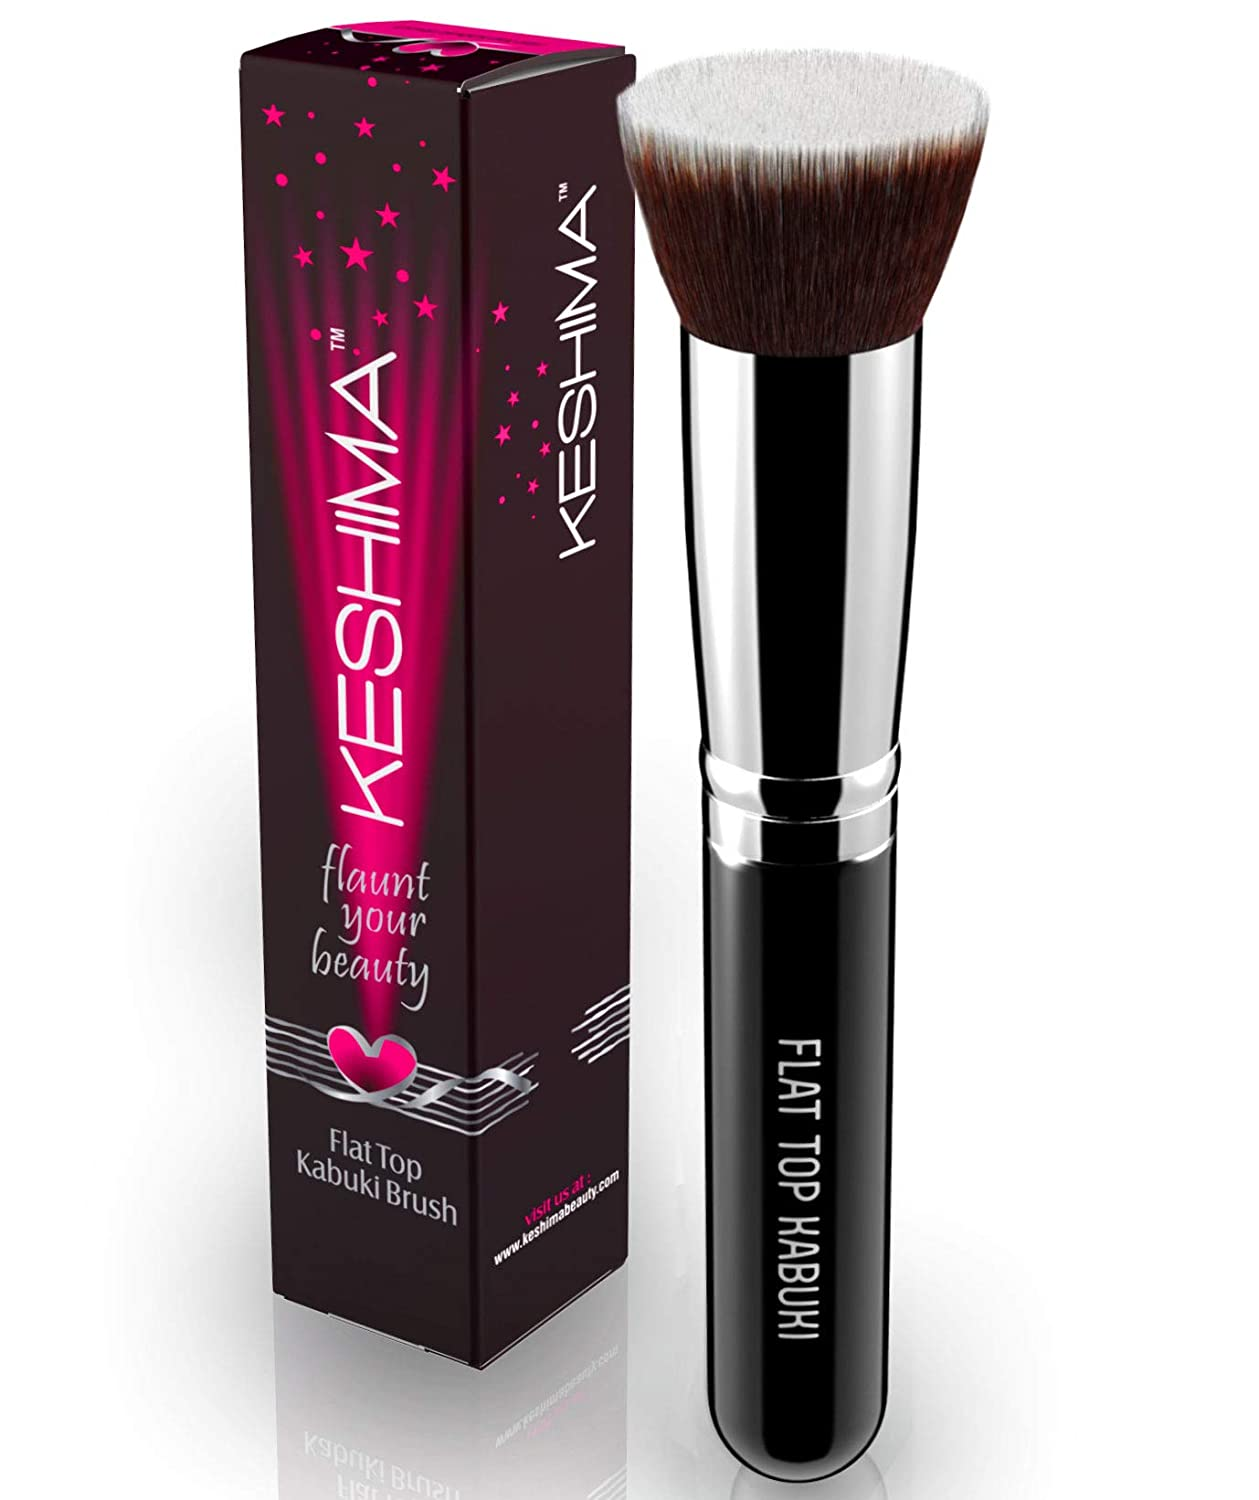 Flat Top Kabuki Foundation Brush By Keshima - Premium Makeup Brush for Liquid, Cream, and Powder - Buffing, Blending, and Face Brush